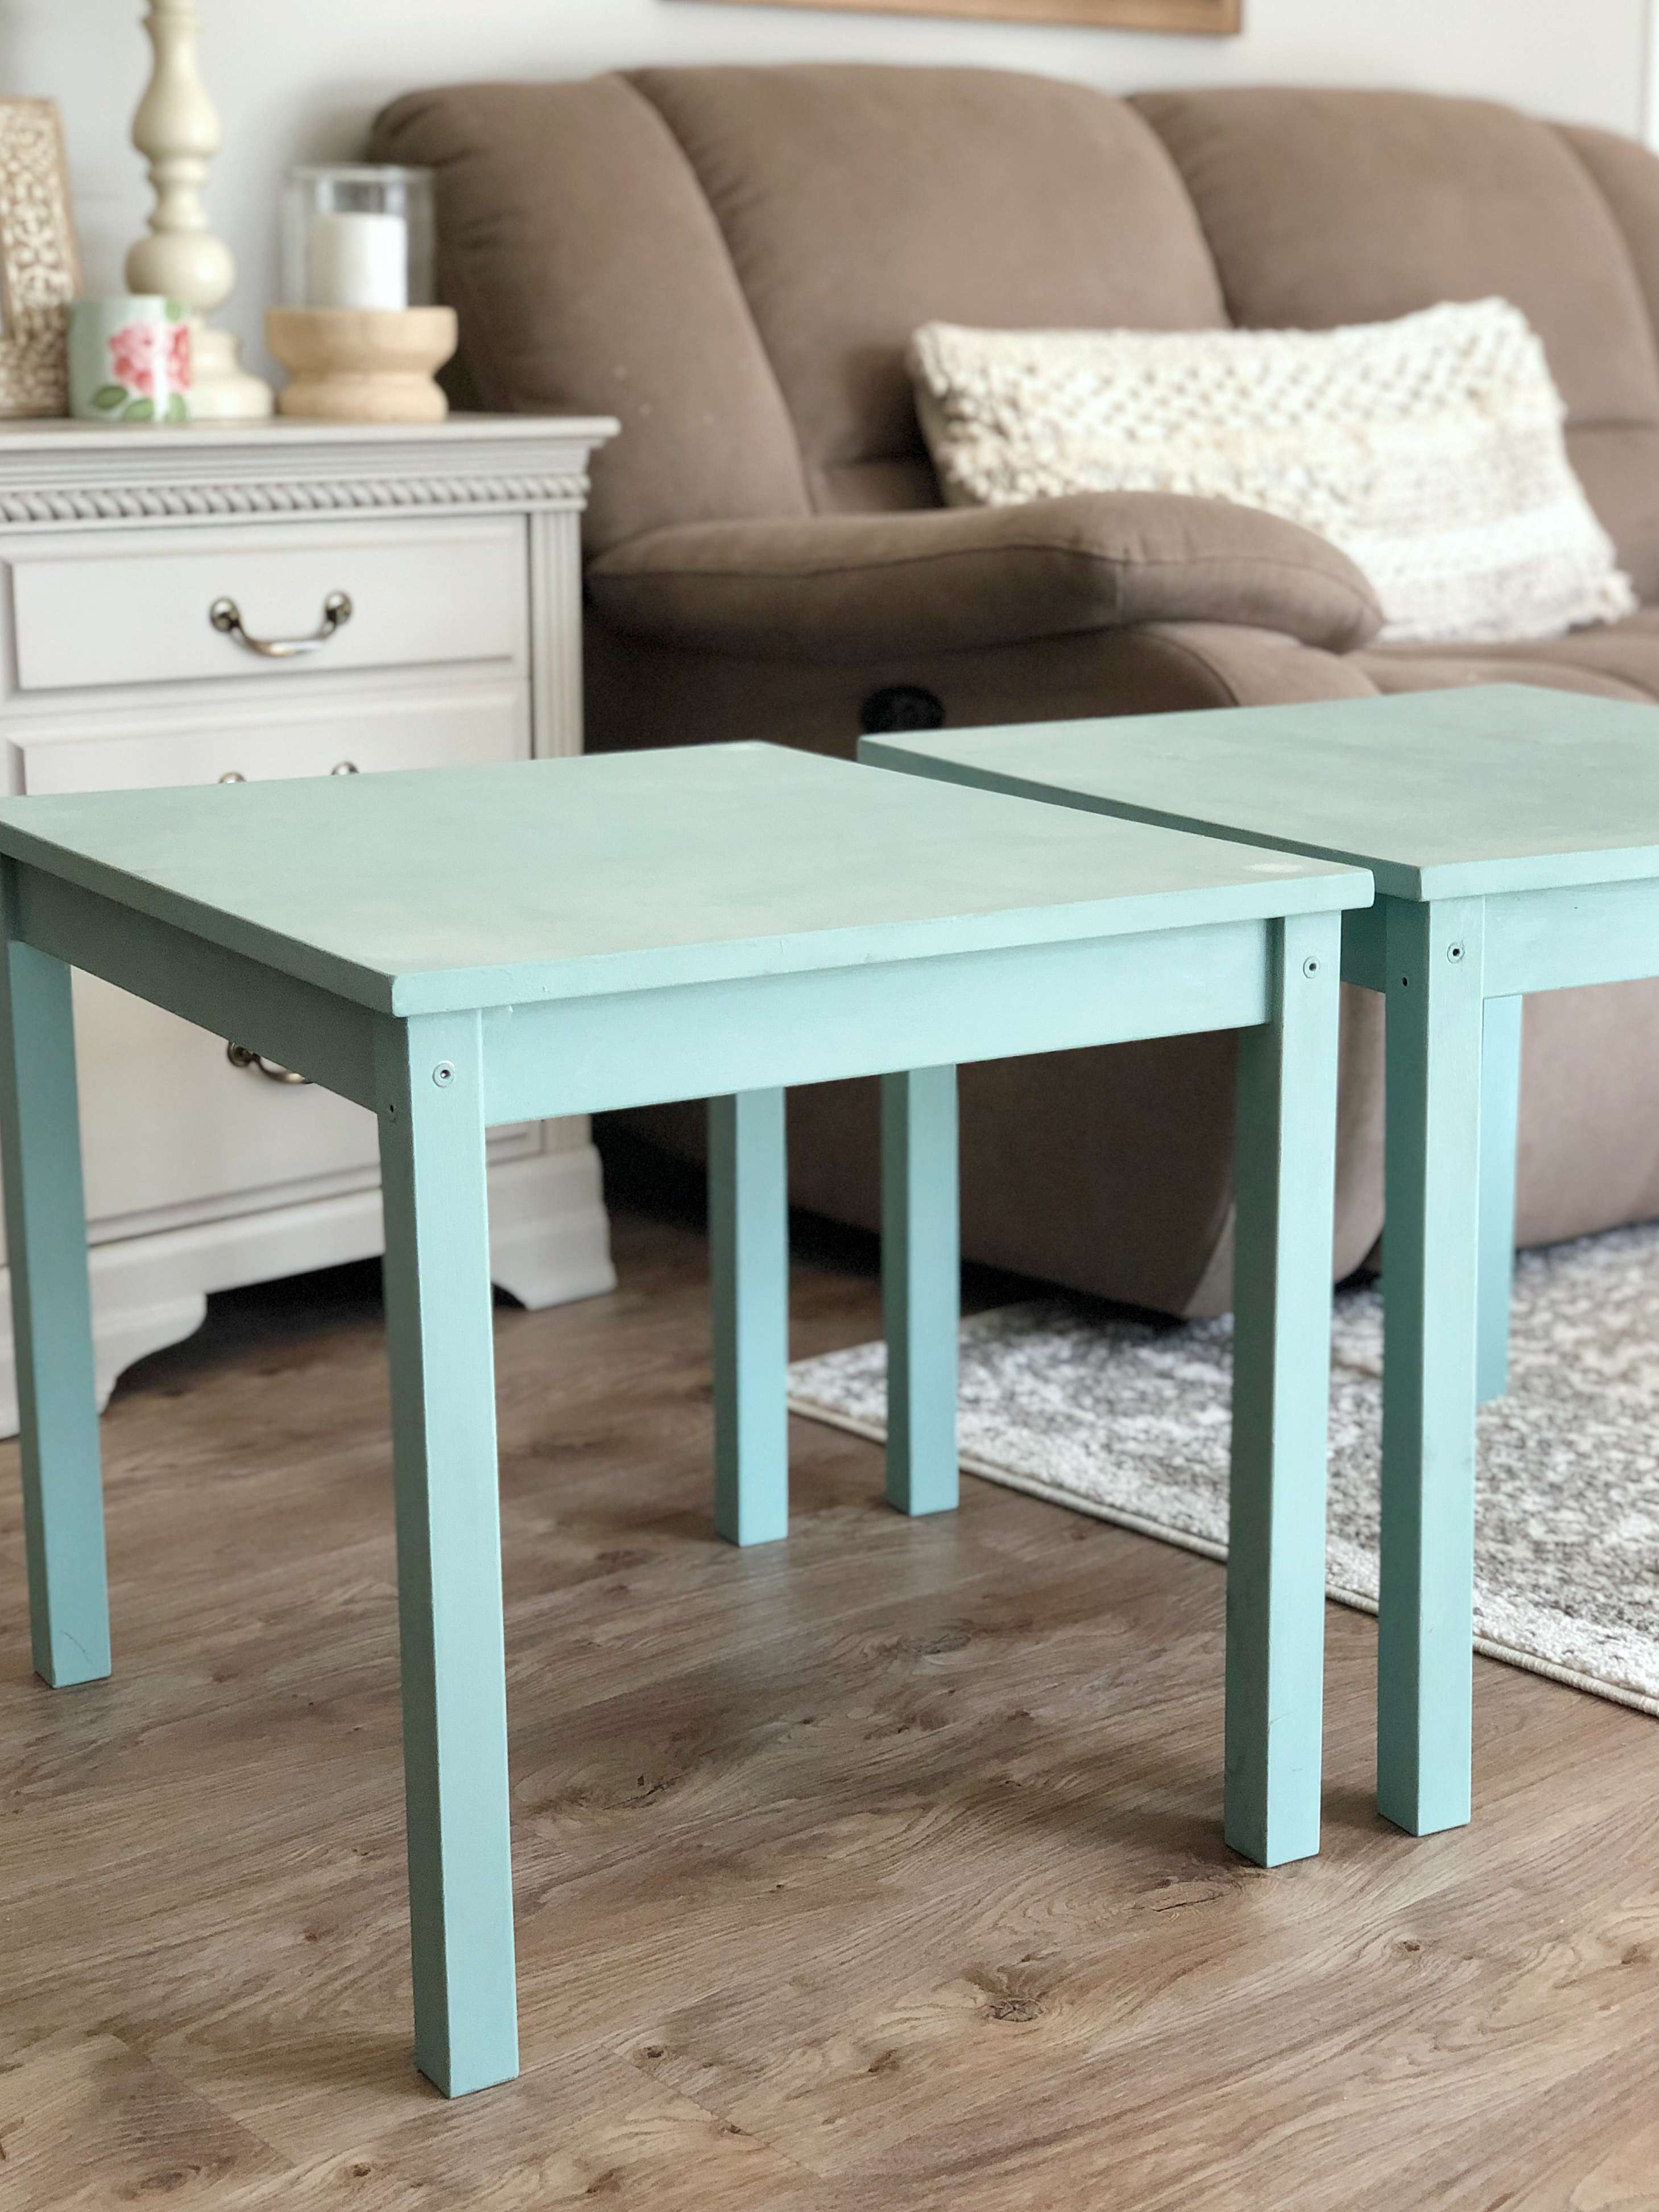 Do you enjoy the concept of reduce, reuse, recycle? Today I'm sharing a few clever upcycling ideas for affordable home furnishings! #fromhousetohaven #upcyclingideas #repurposeddecor